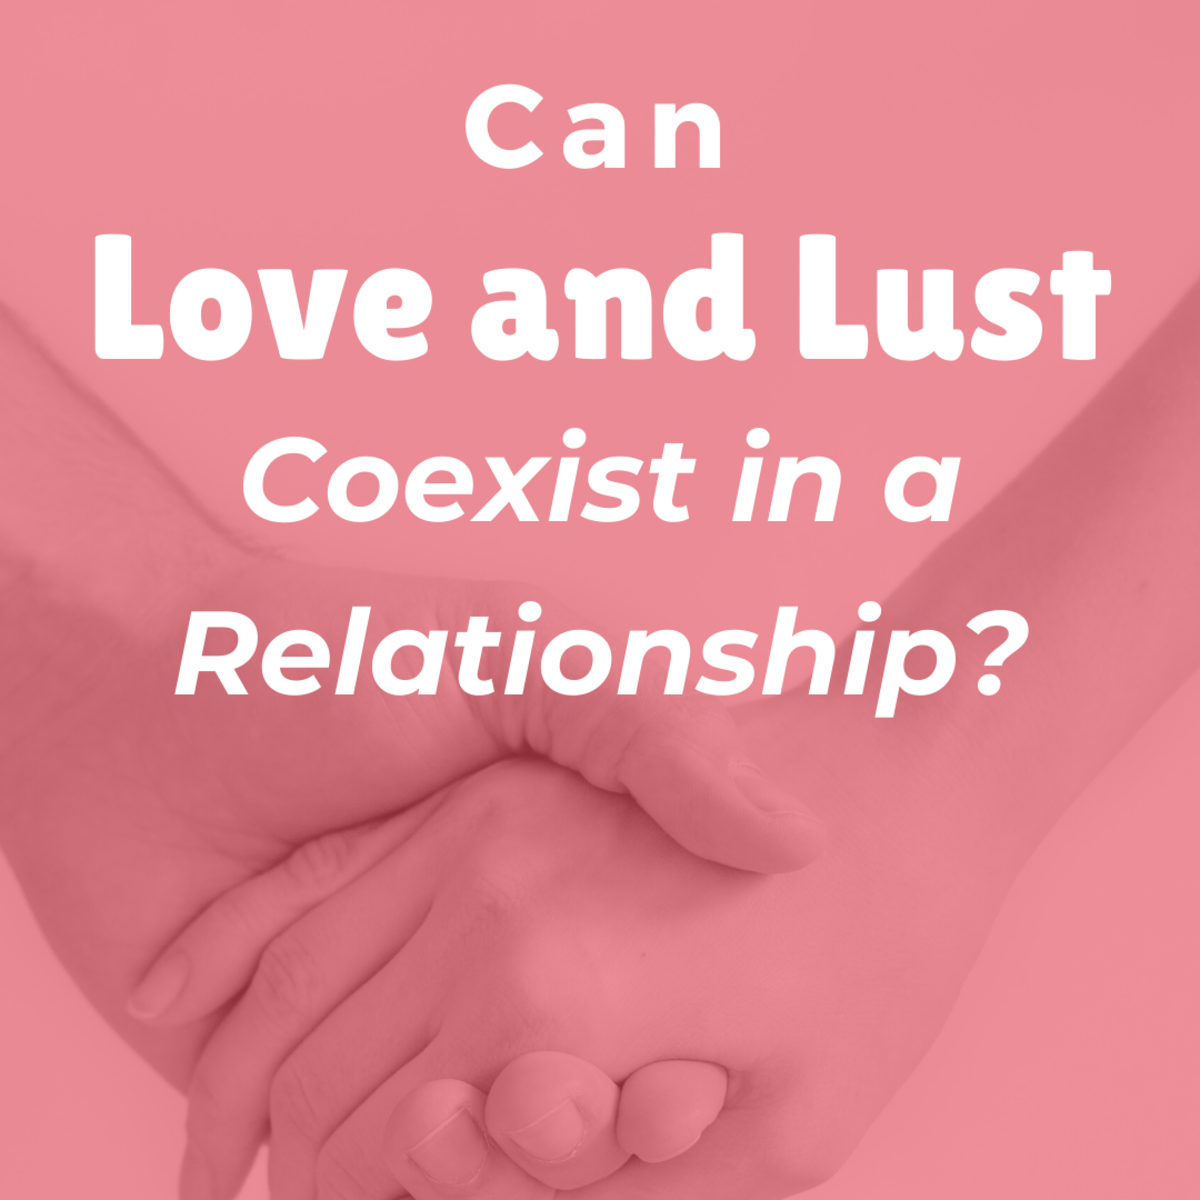 How can you have love and lust in a relationship with respect? Find out!